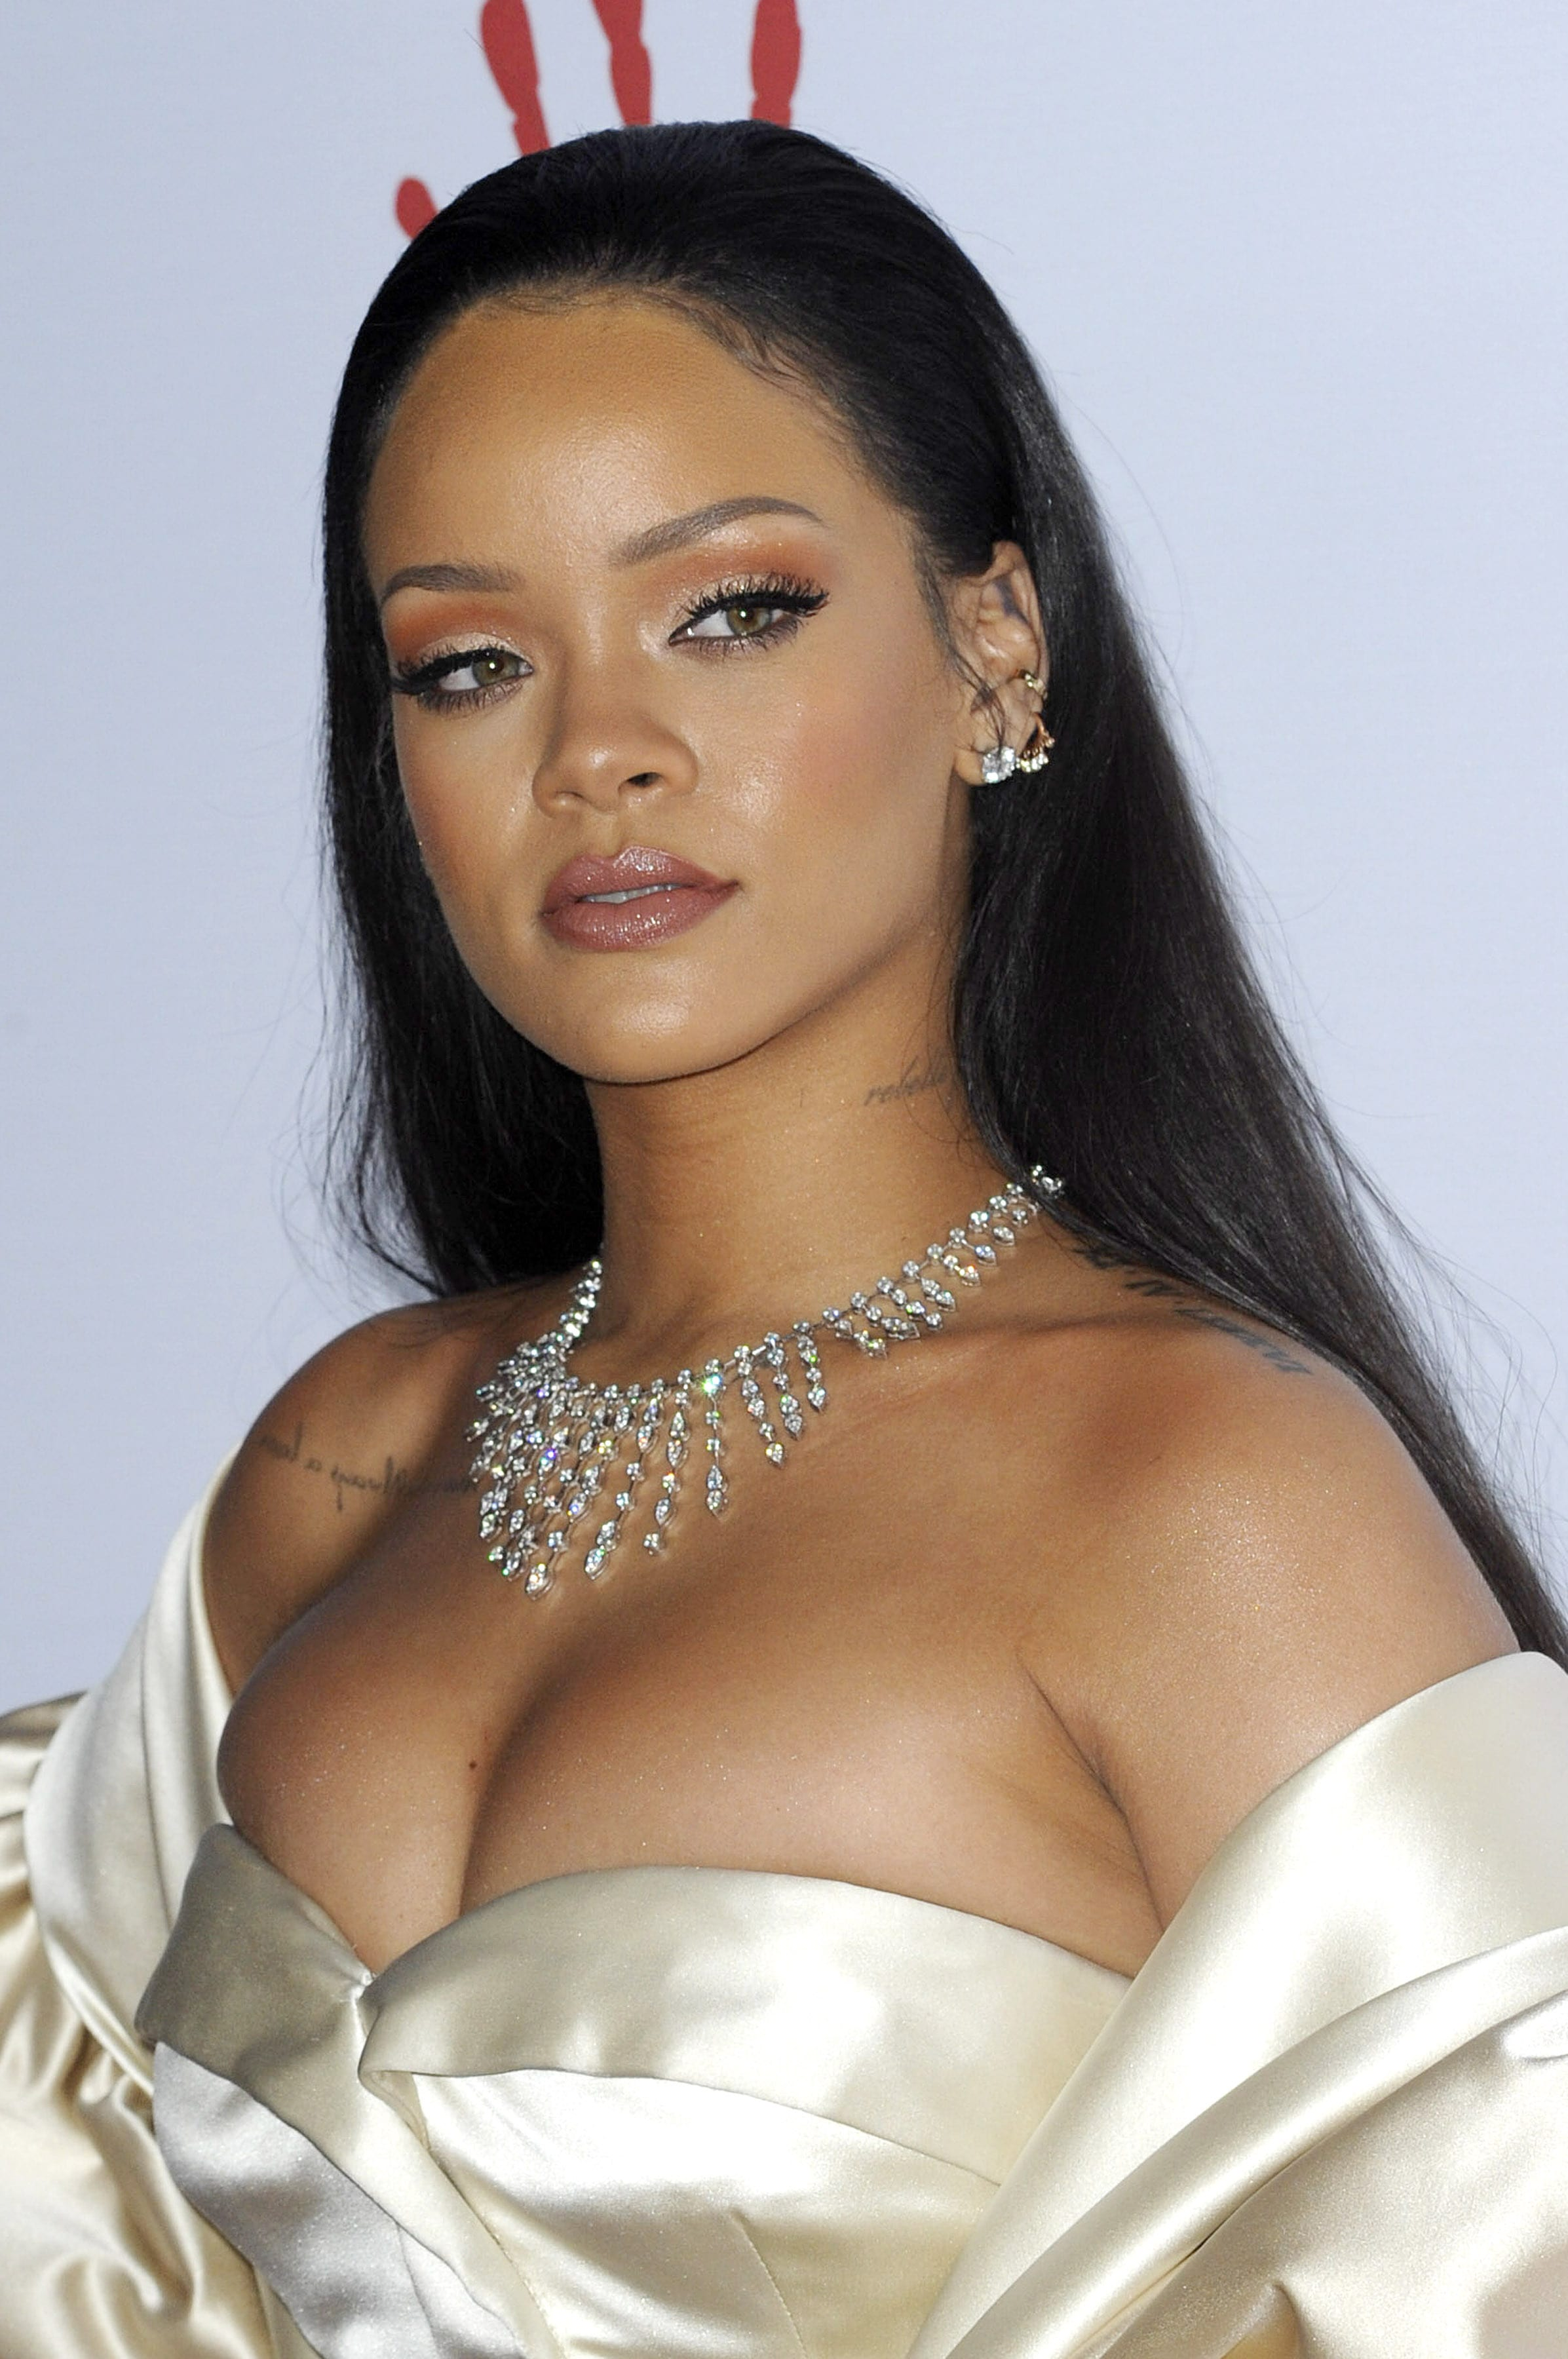 Rihanna's Classic Slicked-Back Hairstyle